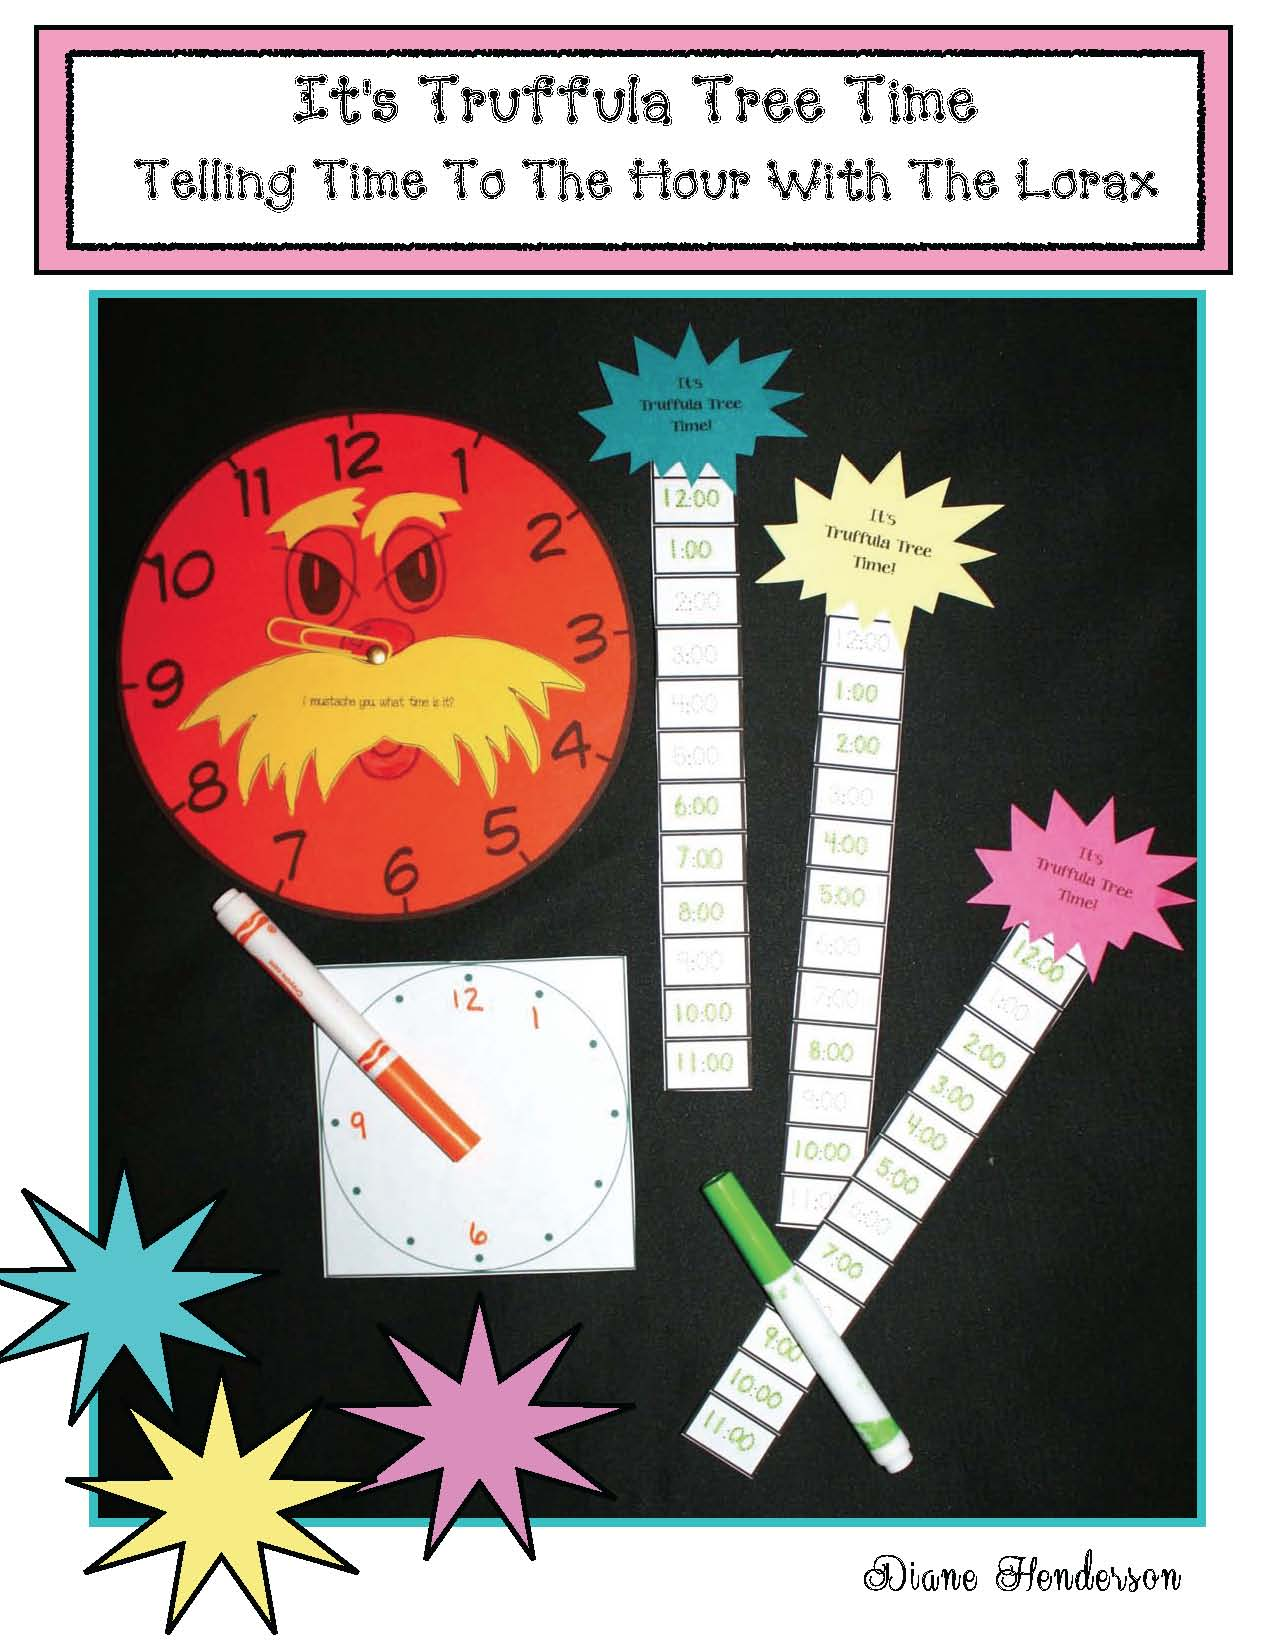 Seuss activities, seuss crafts, seuss centers, seuss games, 2D shape activities 3D shape activities, shape games, shape crafts, shape activities, telling time to the hour activities, Lorax activities, analog and digital time activities, telling time to the hour games